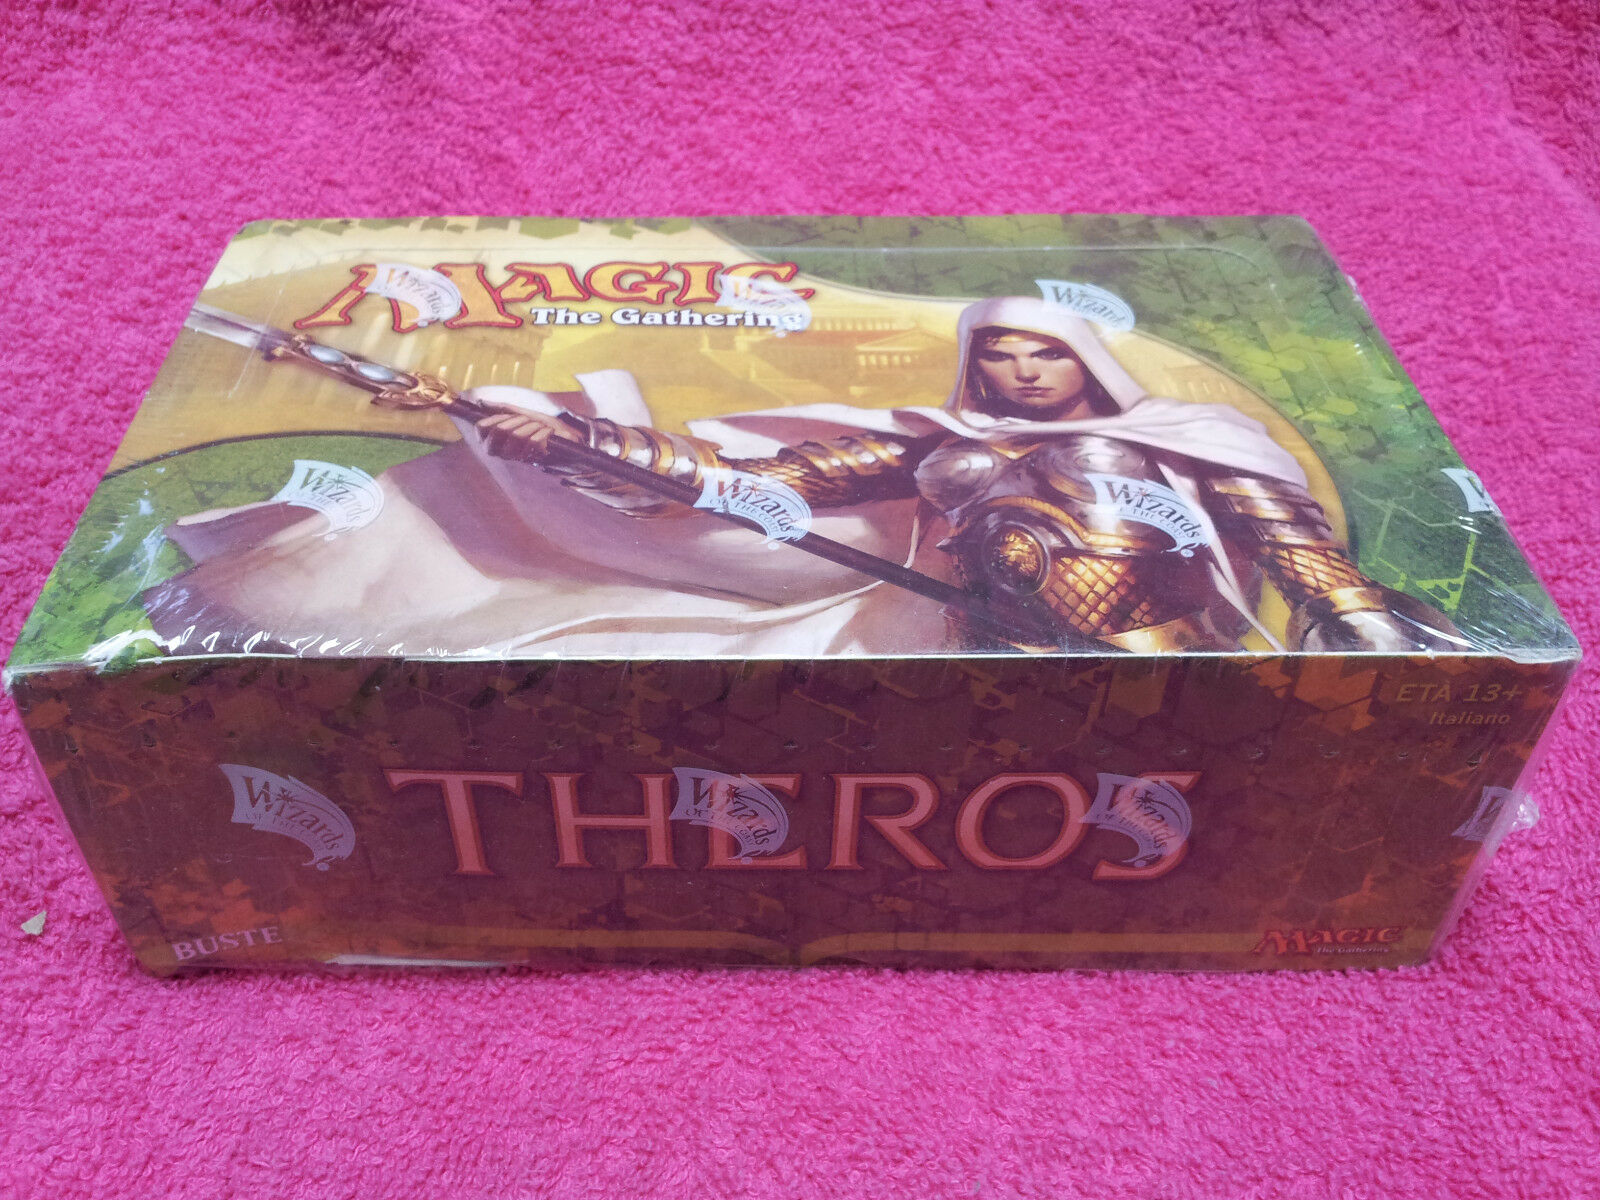 ITALIAN Magic MTG Theros THS Factory Sealed Booster Box Display IT The Gathering